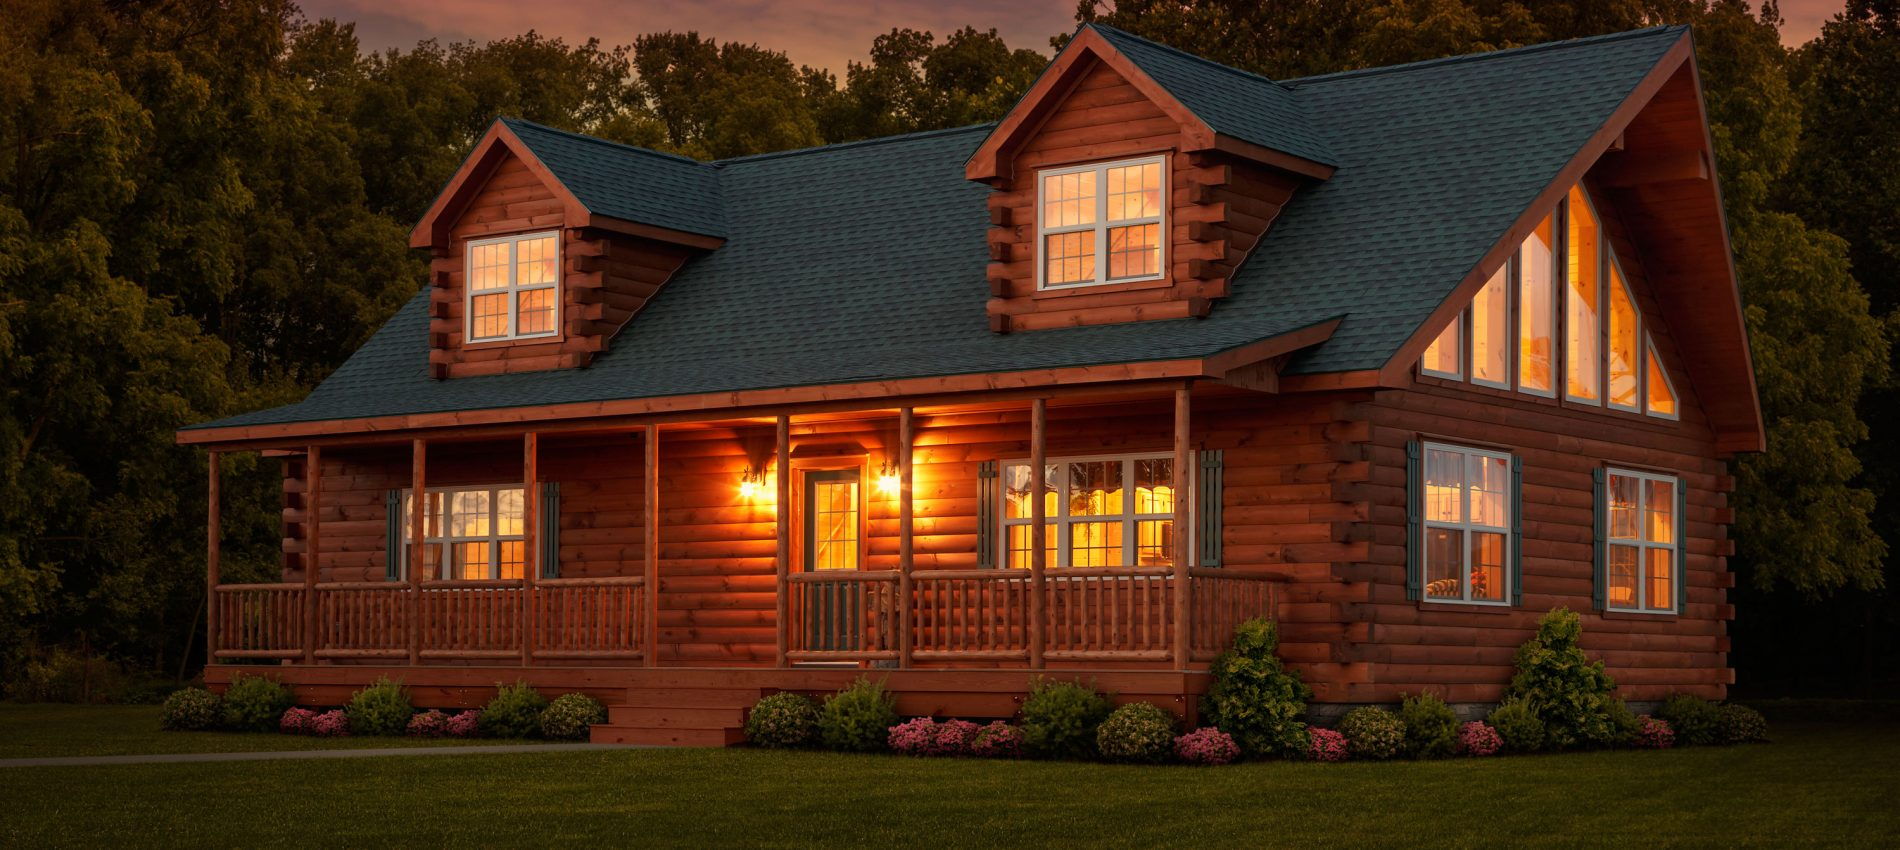 amish Log Cabins for sale in pennsylvania